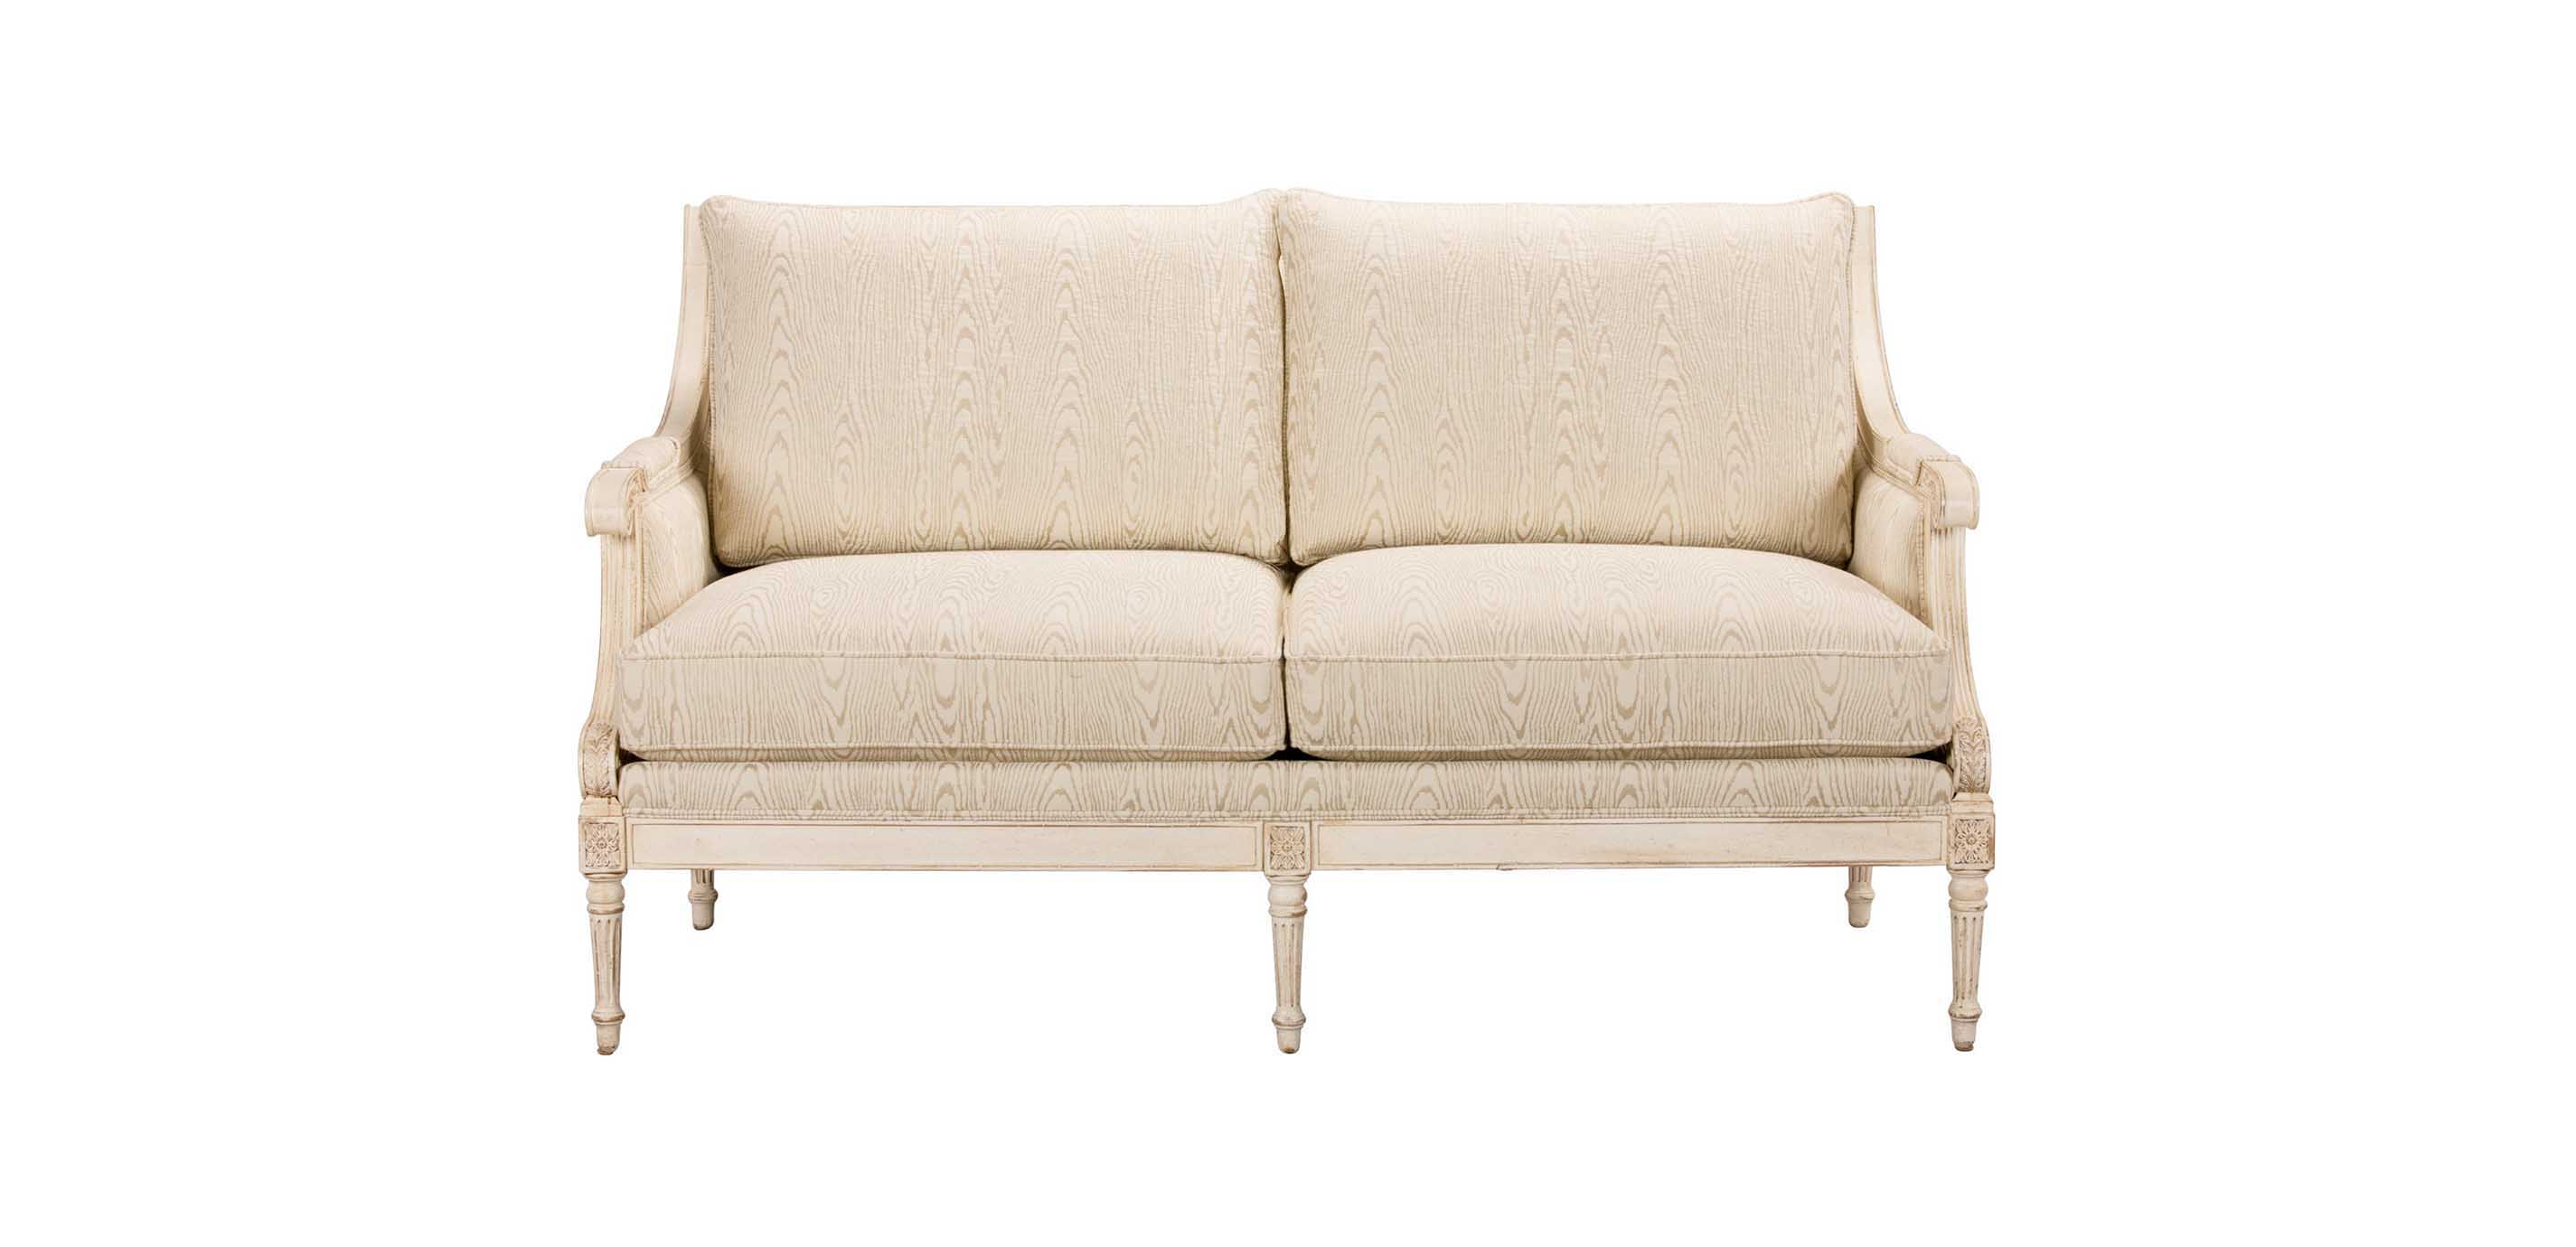 images fairfax loveseat   largegray. fairfax loveseat  sofas  loveseats